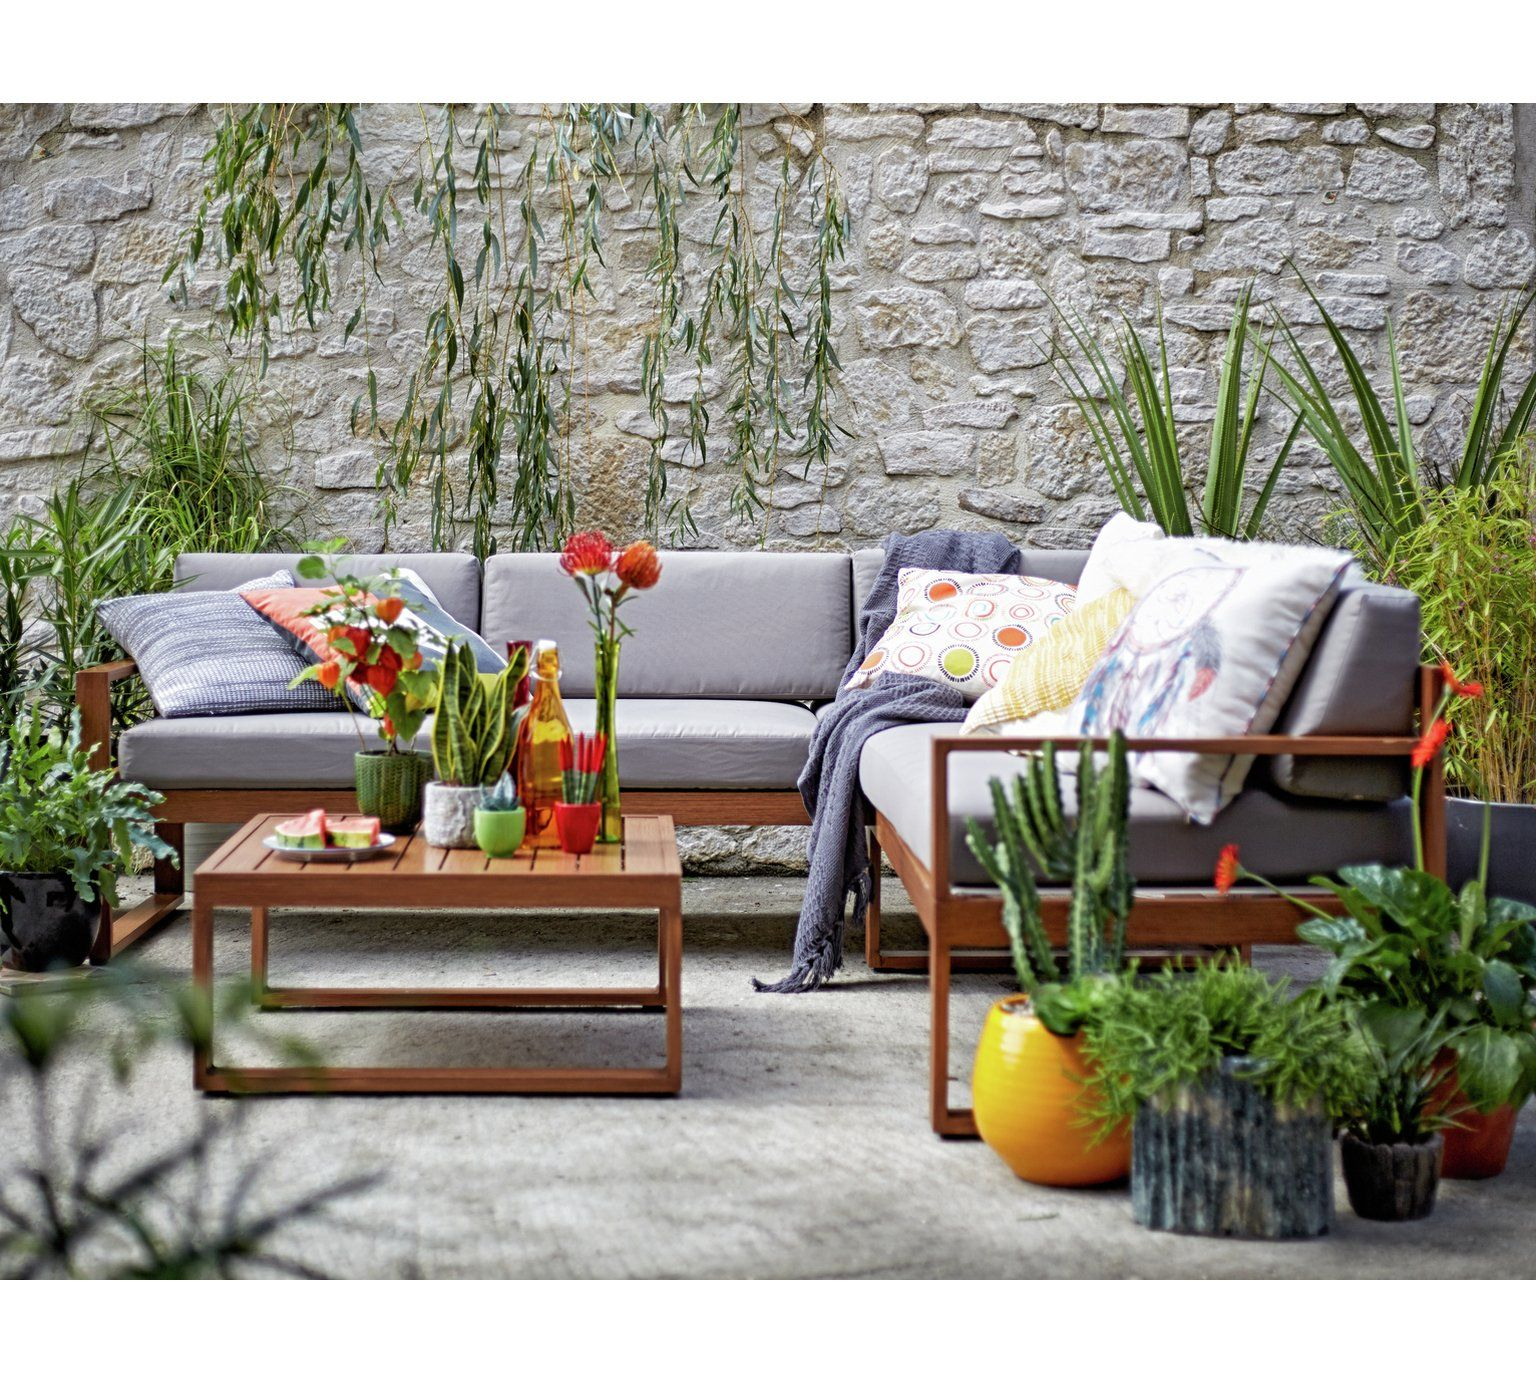 Buy Collection 5 Seater Aluminium Corner Sofa Set At Argos Thousands Of Products For Same Day Deli Corner Sofa Set Garden Table And Chairs Metal Outdoor Table